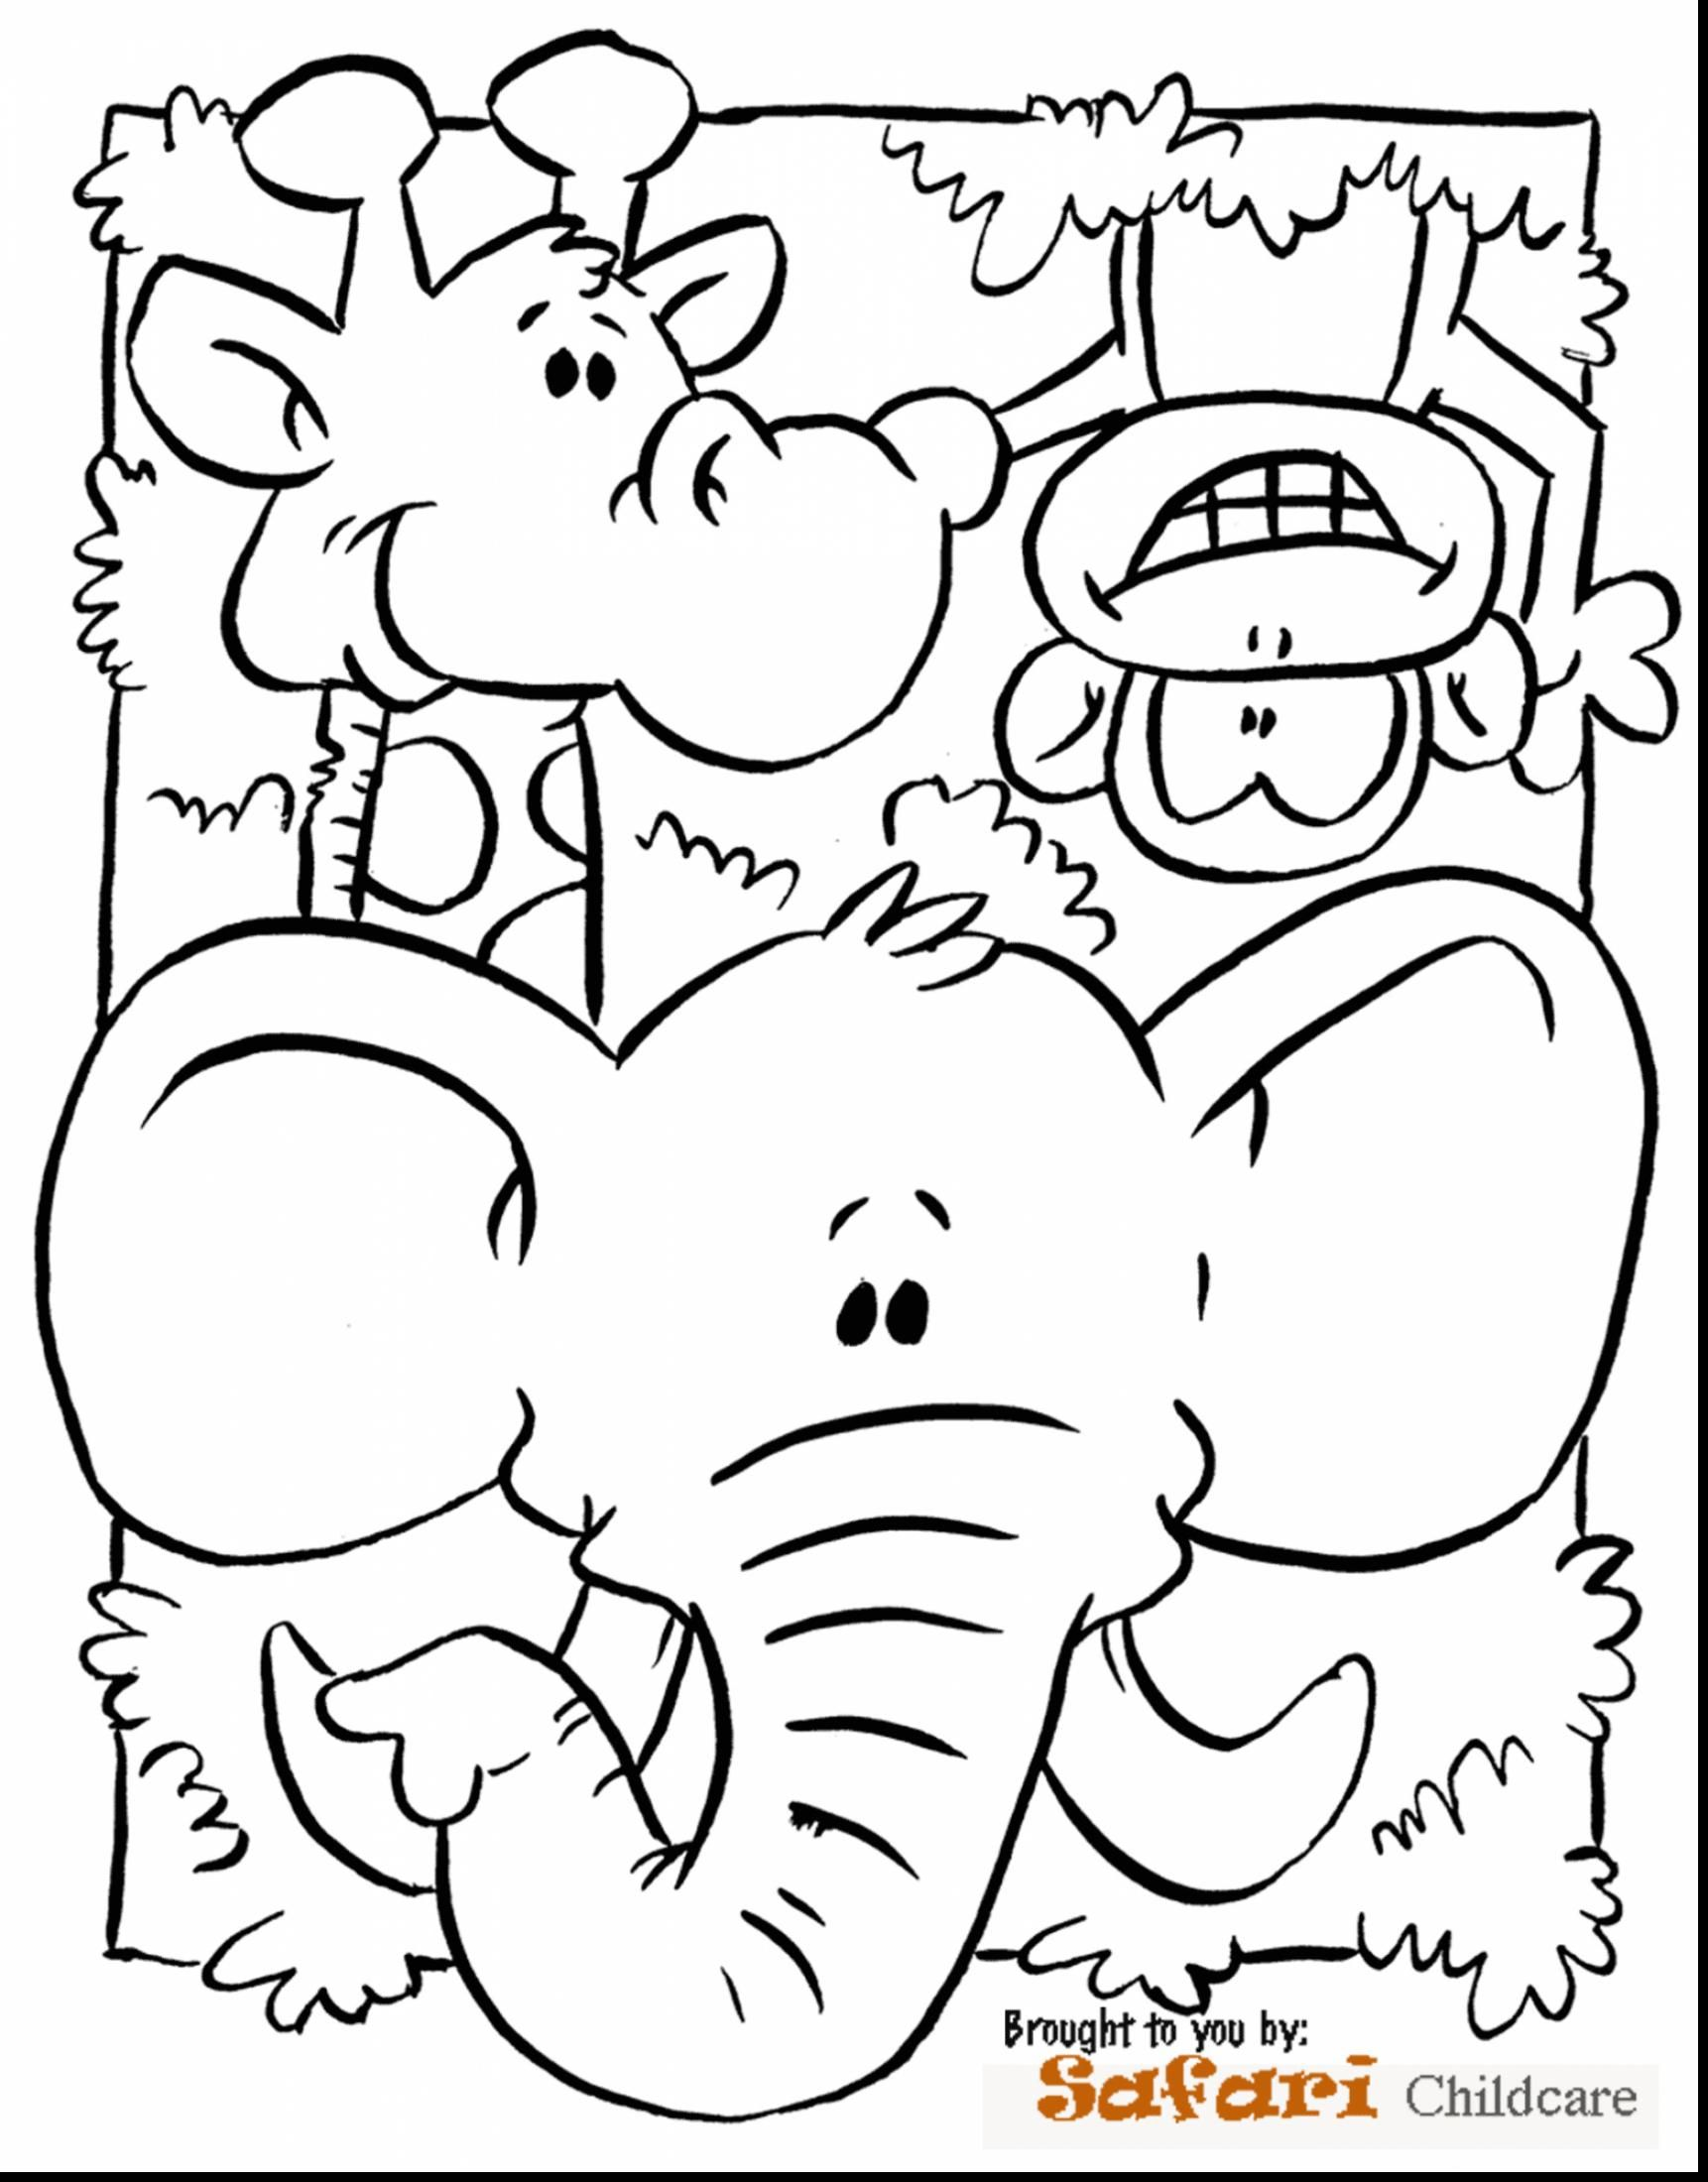 Remarkable Preschool Jungle Animals Coloring Pages With Page Throughout Zoo Animal Coloring Pages Animal Coloring Pages Jungle Coloring Pages